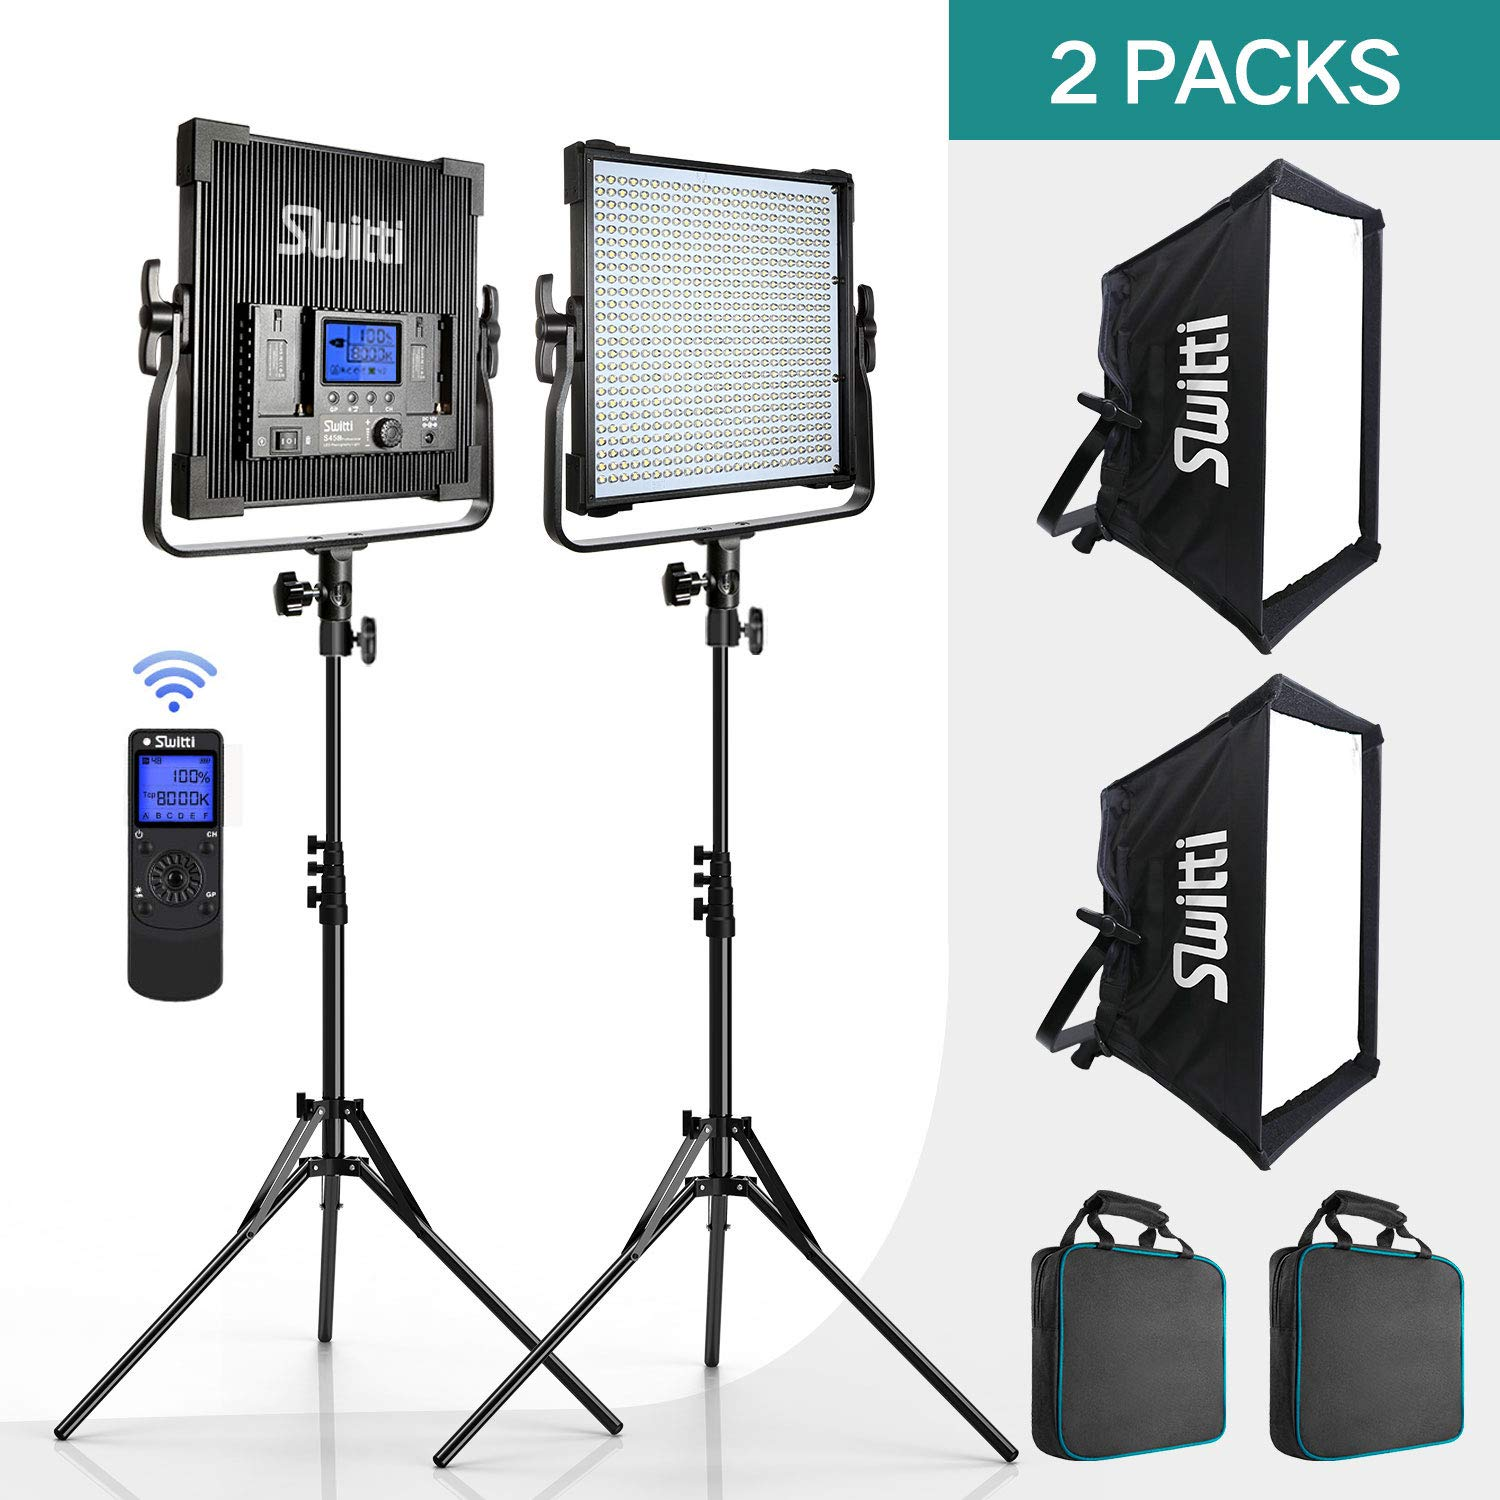 2 Packs Bi-Color 600 LED Video Lights 45W, Switti Led Light Panels with Light Stands Softbox Lighting Kit 3000K-8000K CRI96+, Lights for Video Studio YouTube Product Photography Shooting(RC Included)